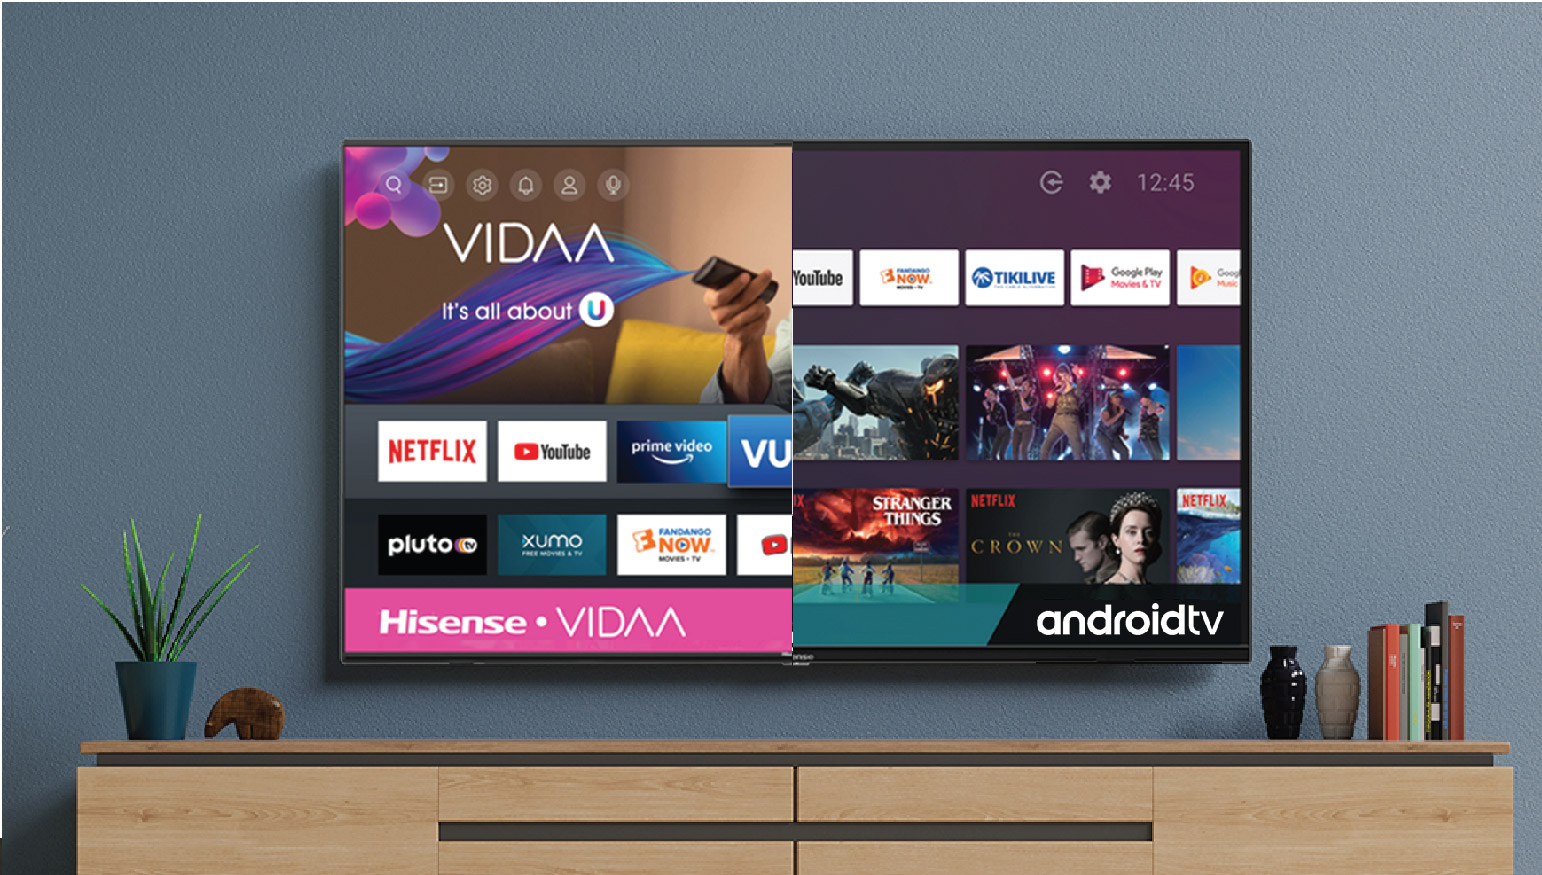 Android tv vs Smart tv